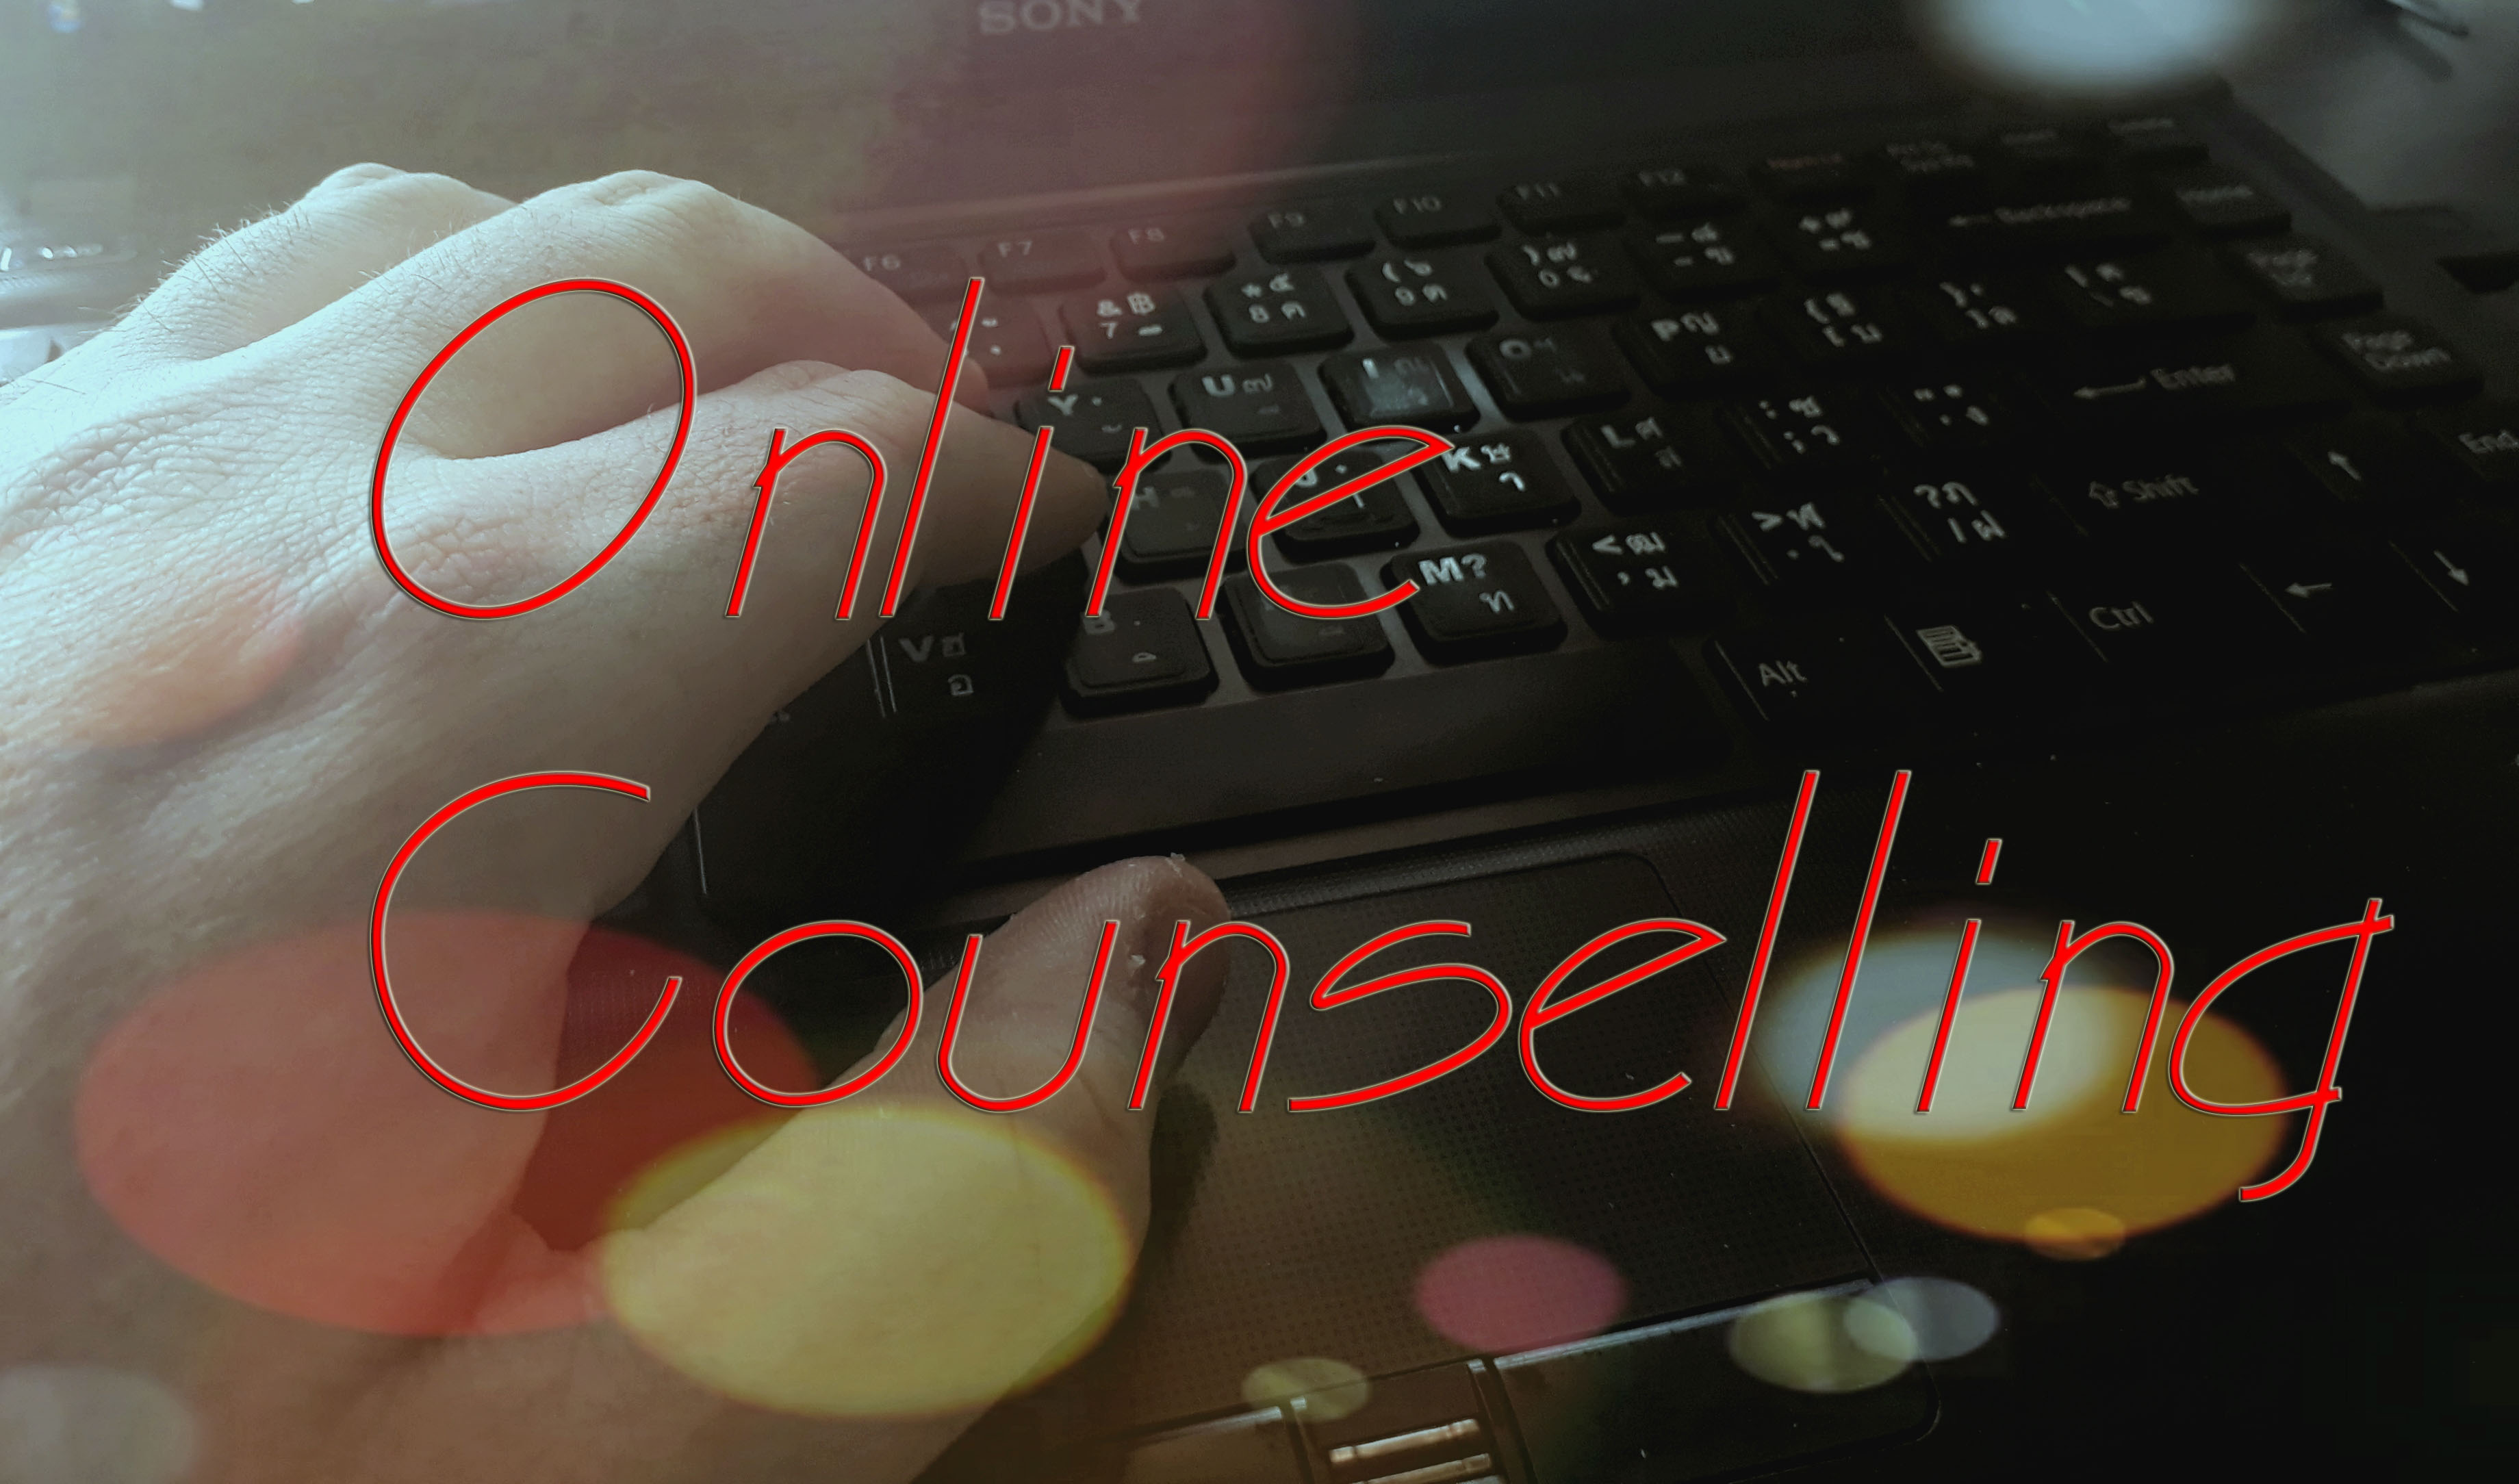 Online counseling could save your life